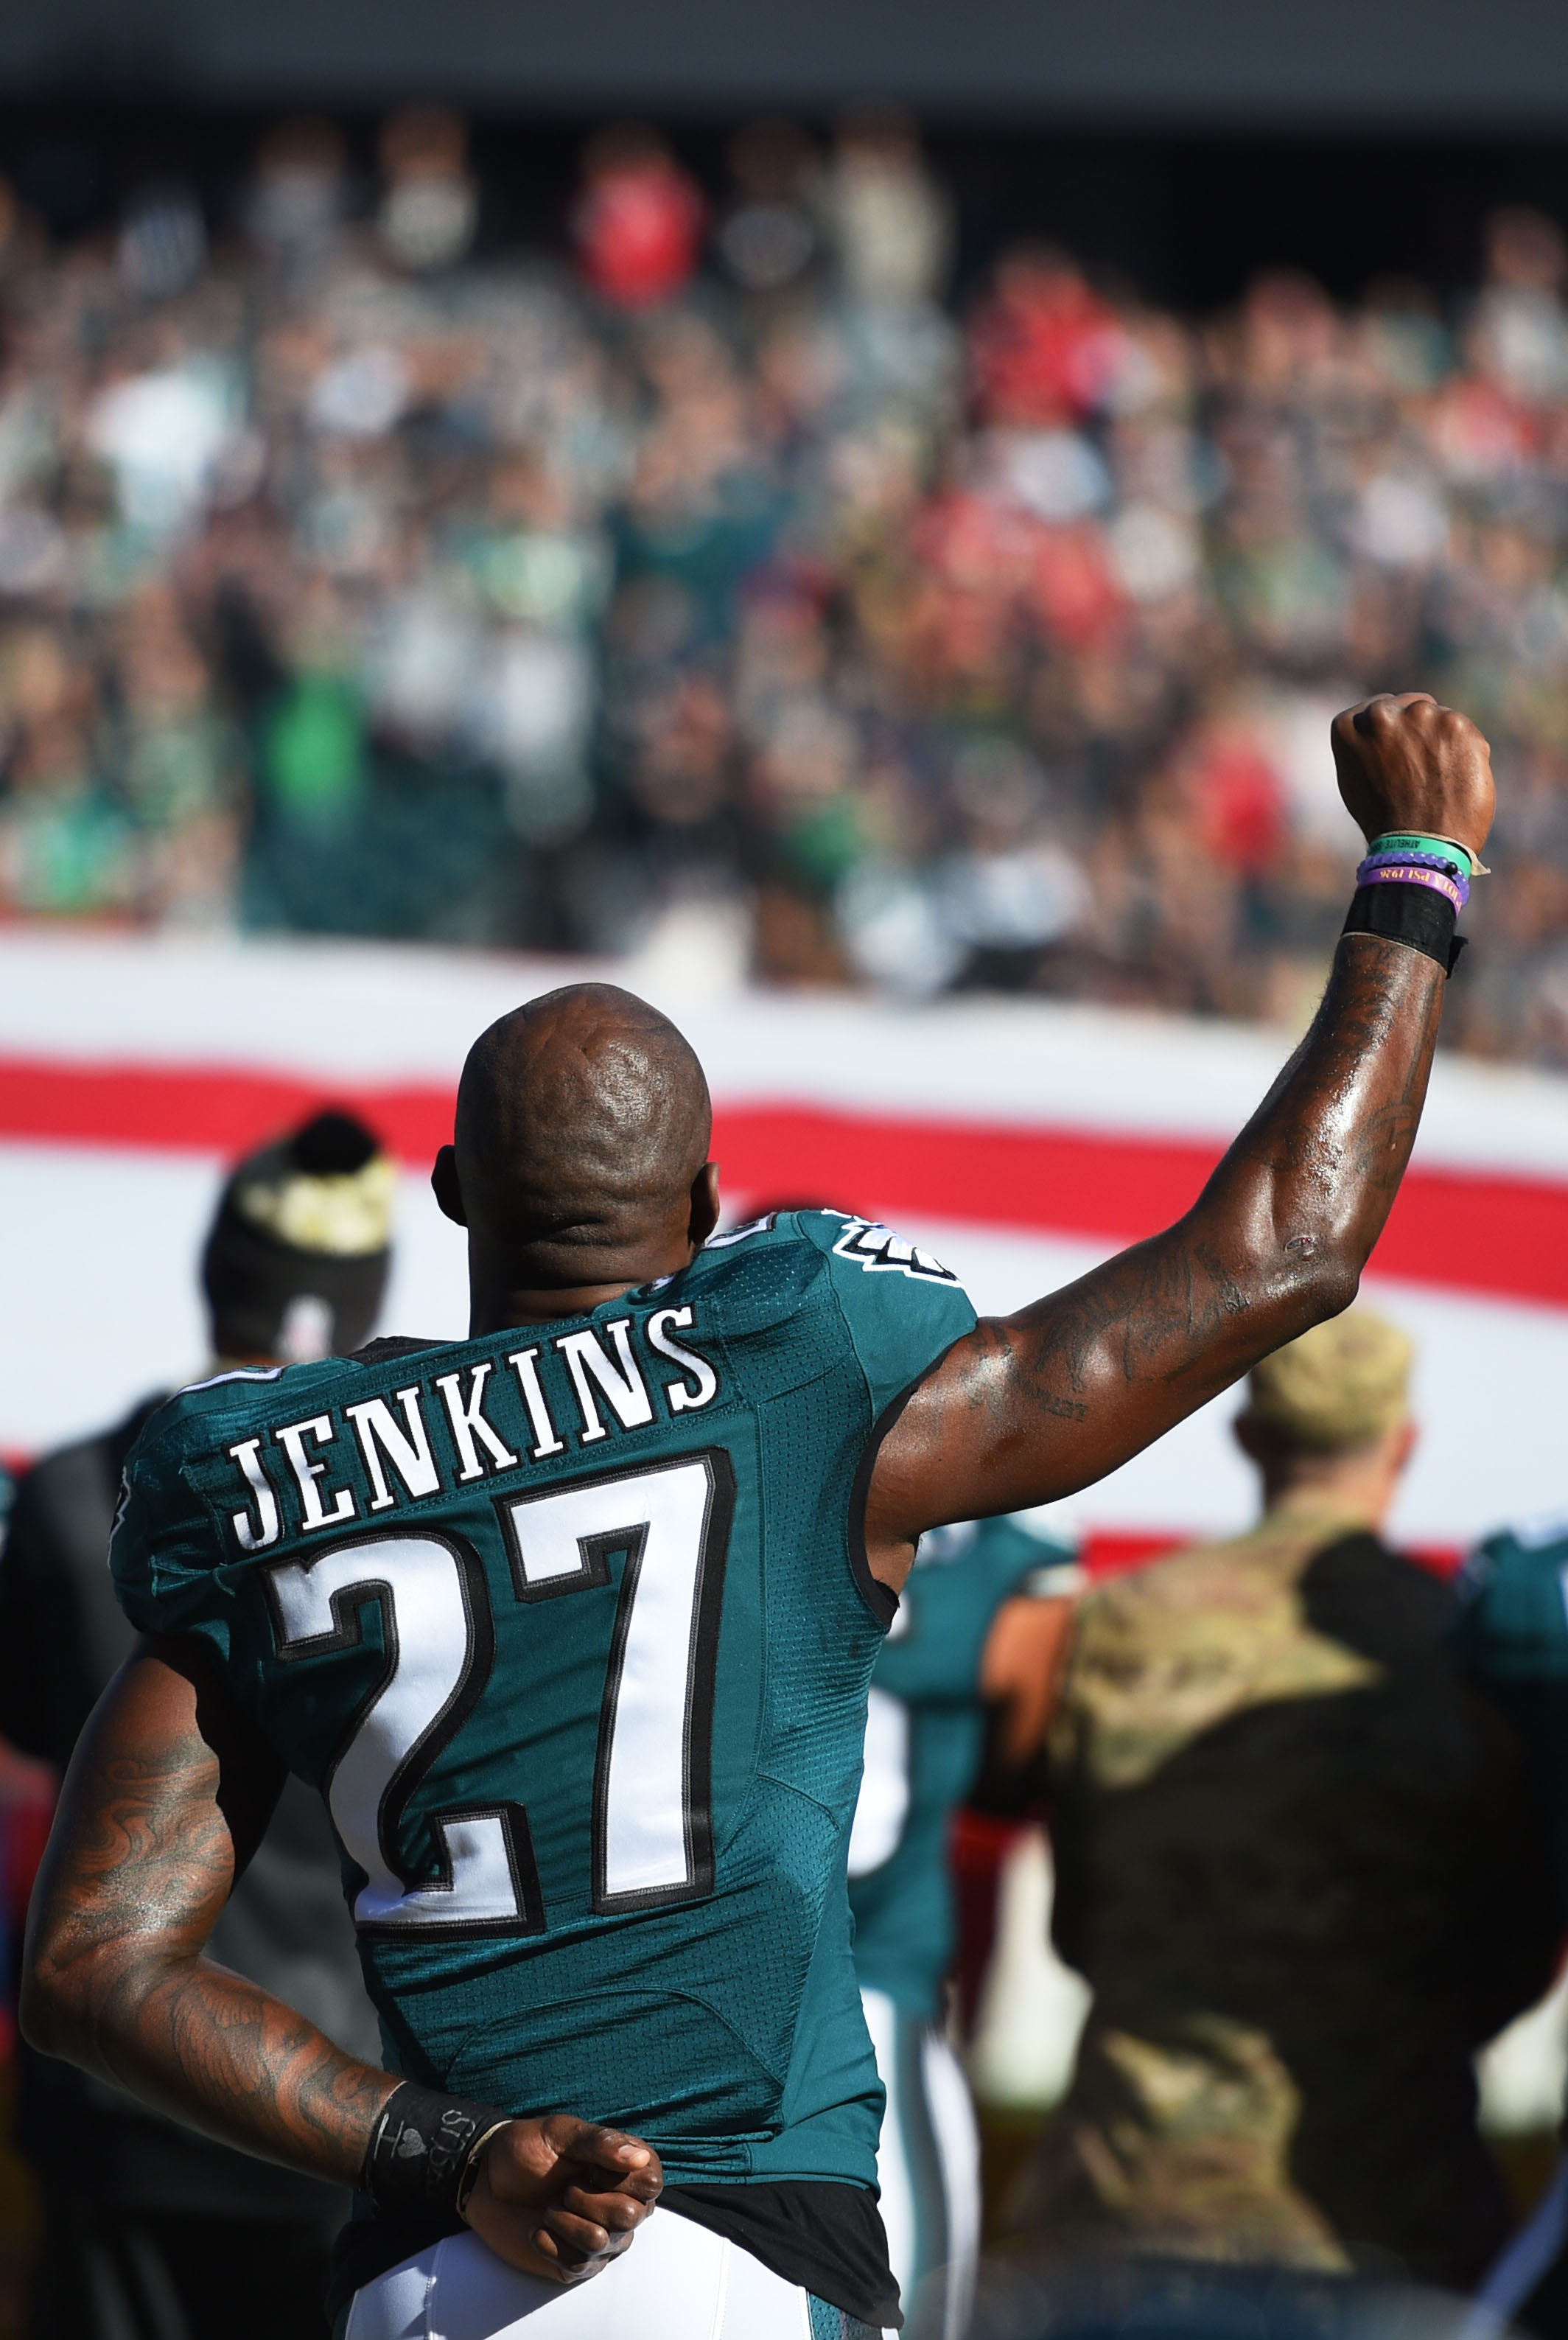 Philadelphia Eagles strong safety Malcolm Jenkins (27) raises his fist during the National Anthem before the game against the Atlanta Falcons at Lincoln Financial Field.